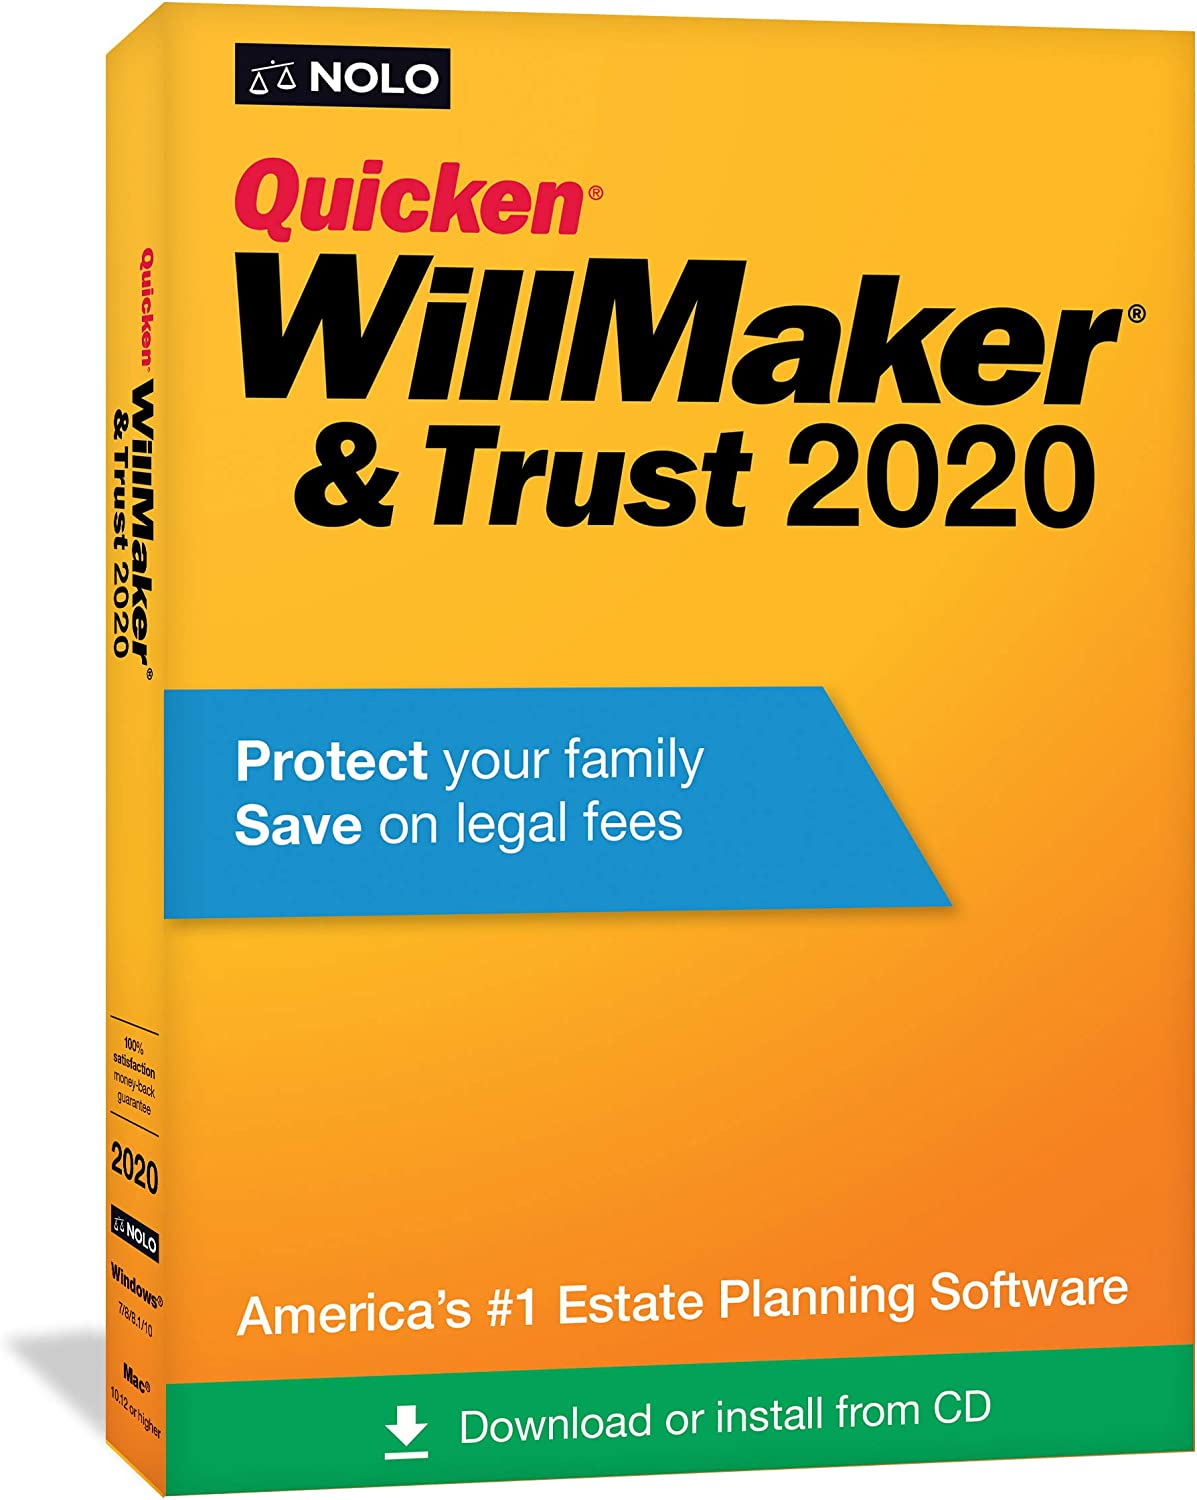 Quicken WillMaker & Trust Discount Coupon Code